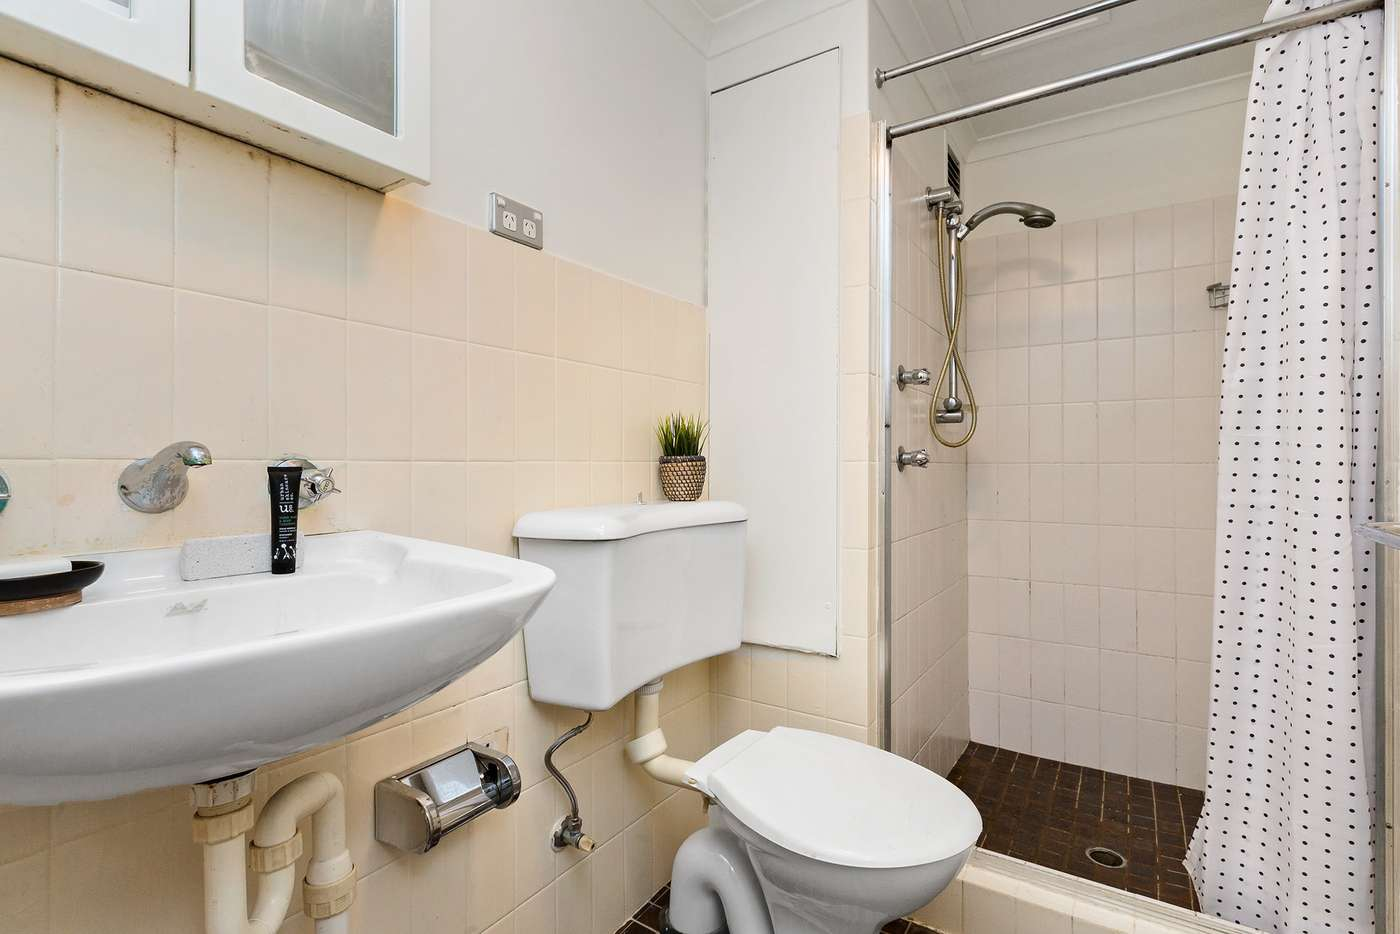 Fifth view of Homely apartment listing, 520/29 Newland Street, Bondi Junction NSW 2022